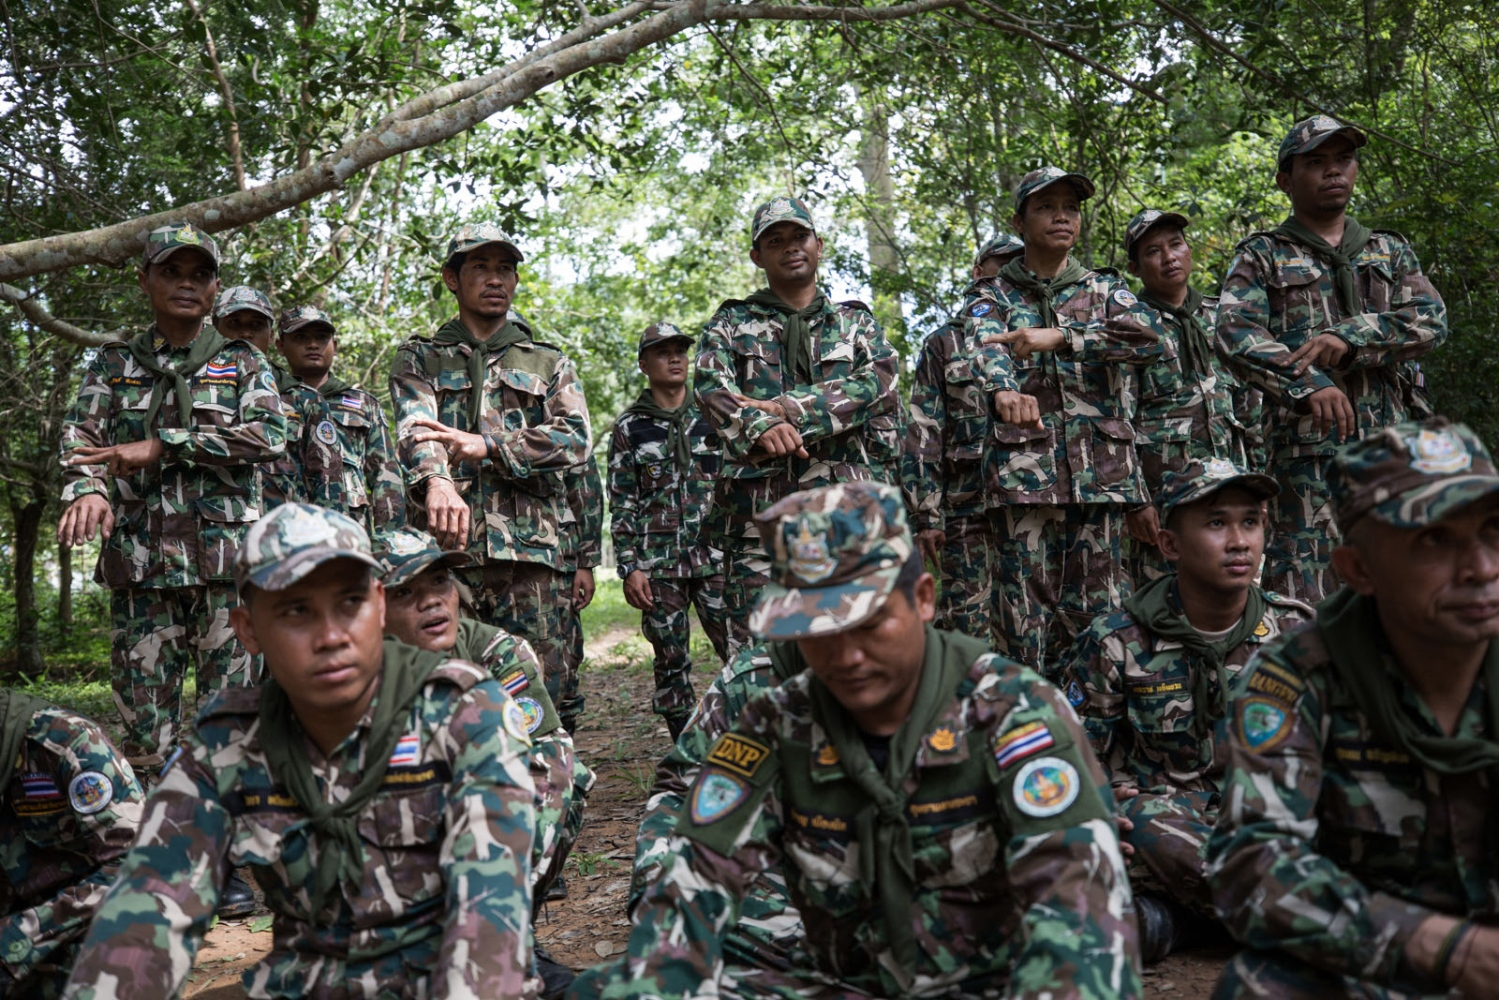 New recruits and those on a refresher course take part in activities during a 4 day forest ranger training course in Ta Praya National Park. Ta Praya National Park, Sa Kaew Province - September 2018